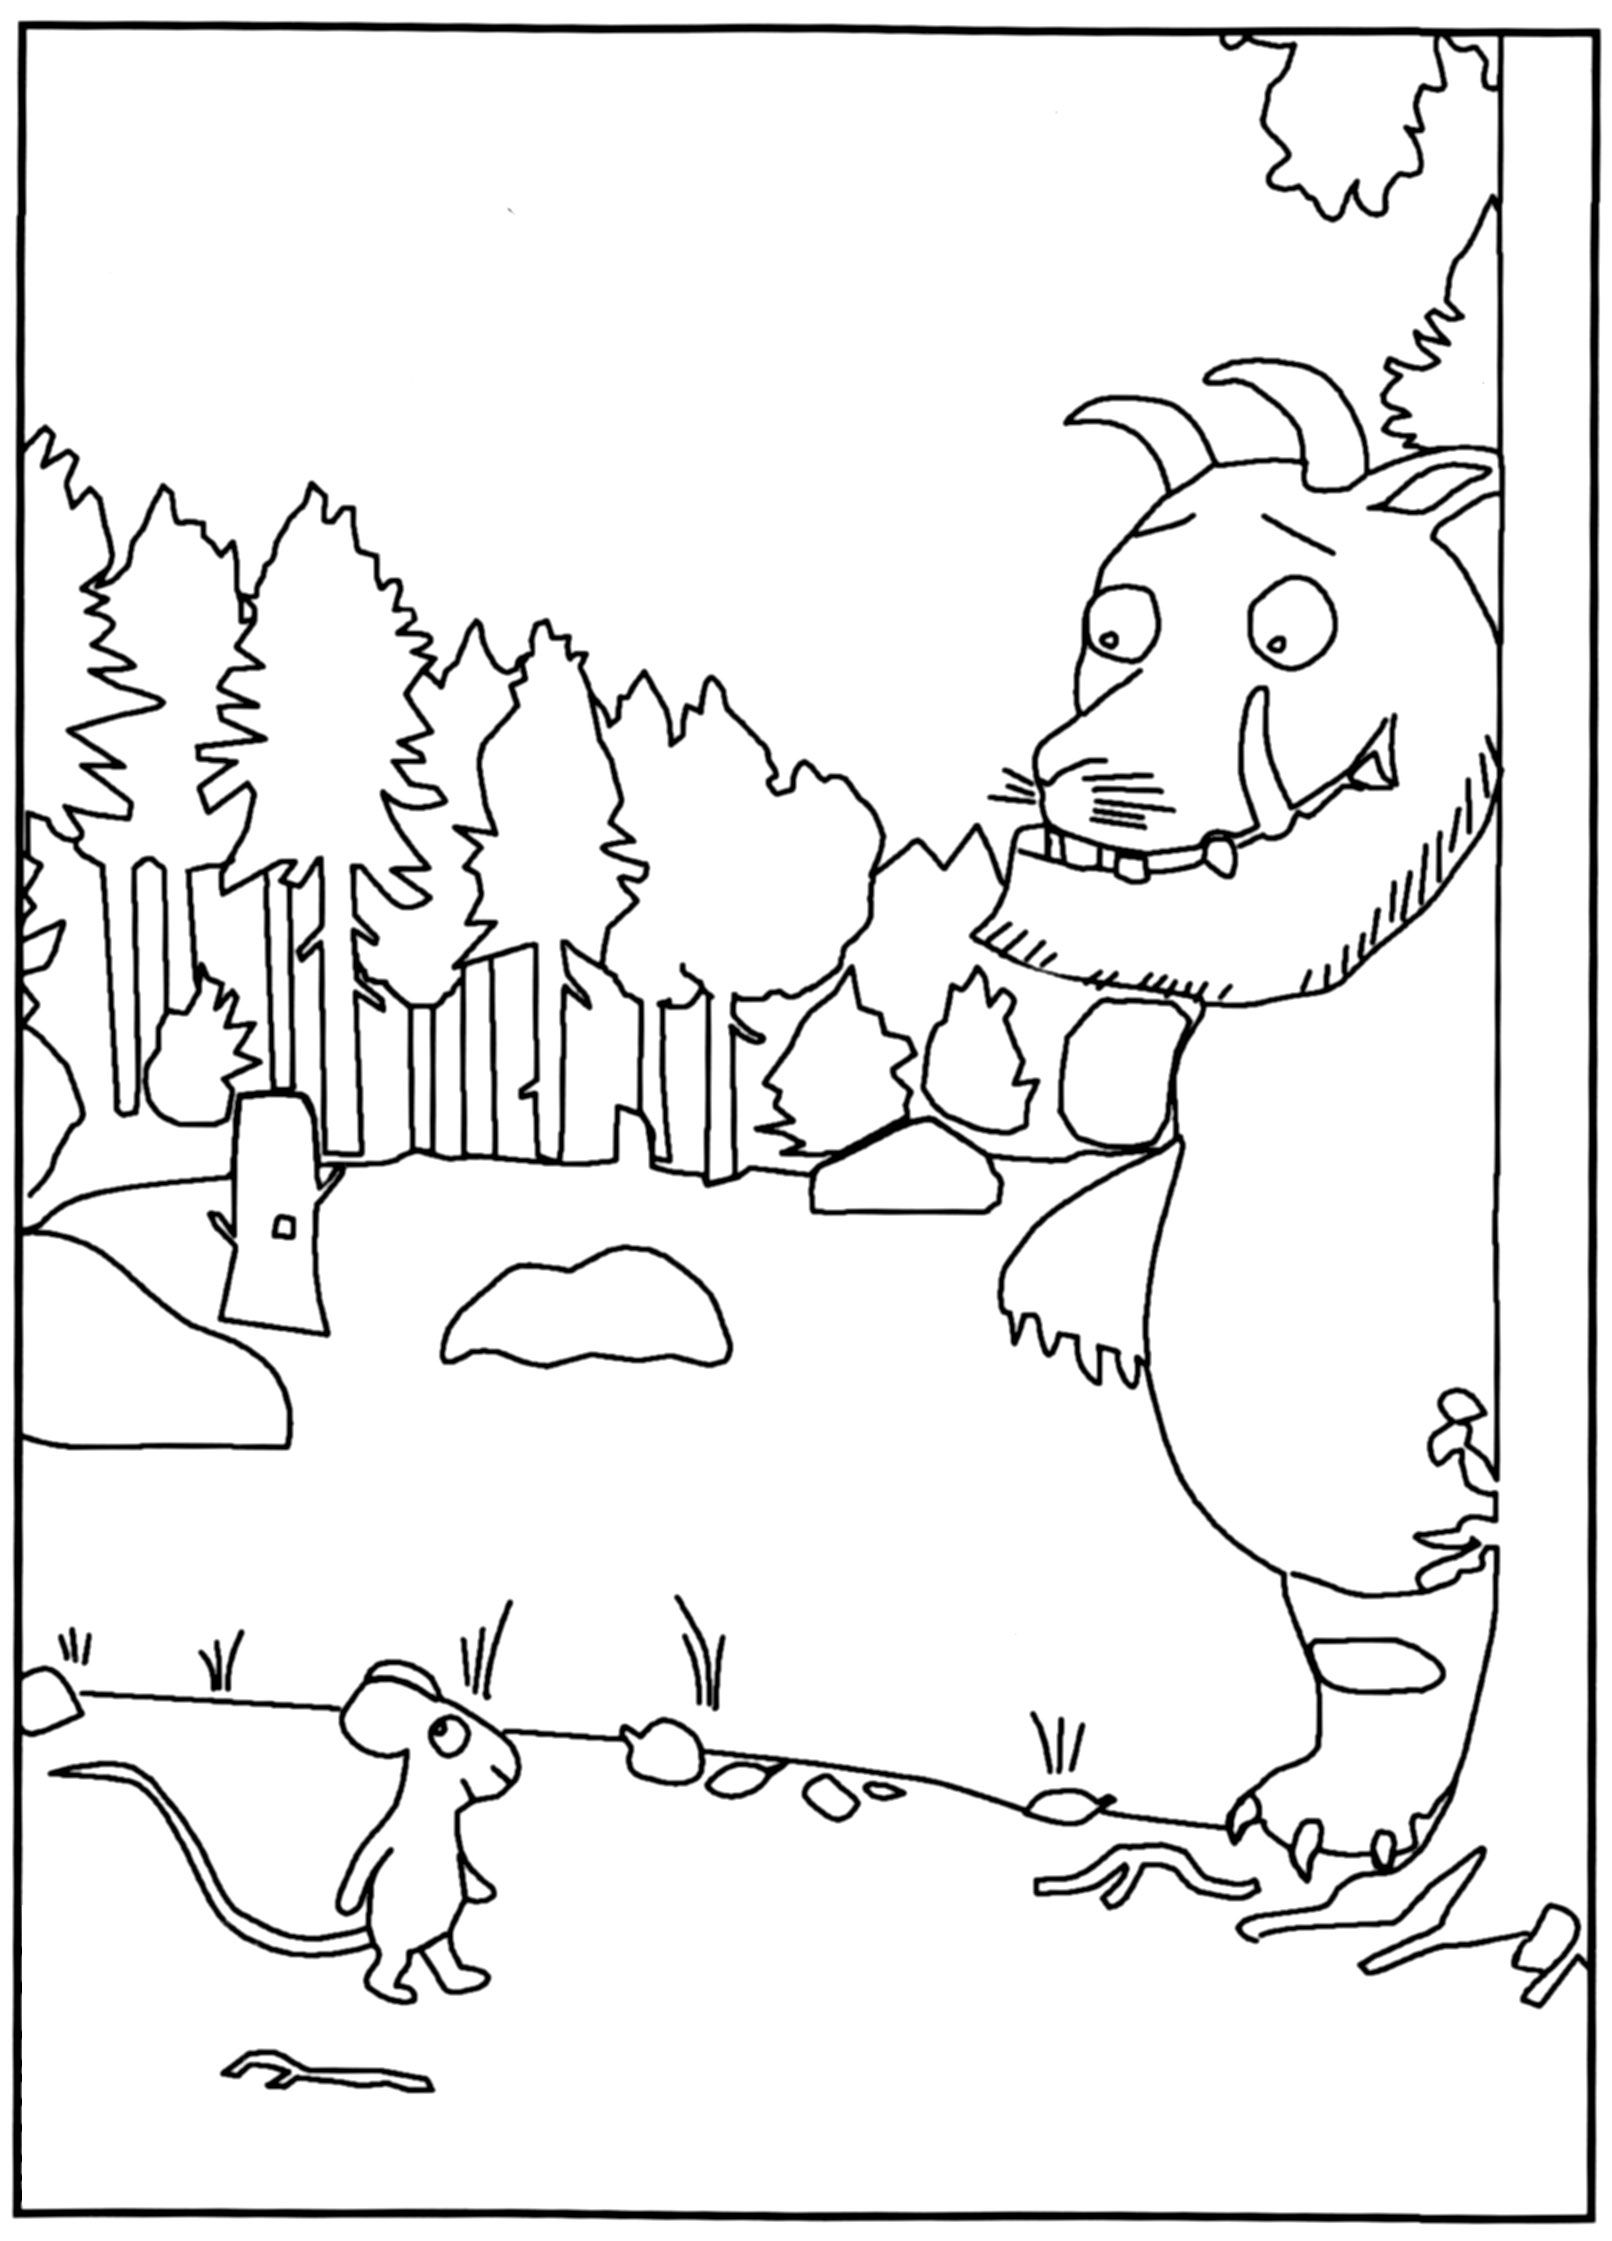 Worksheet The Gruffalo Worksheets Ks1 Carlos Lomas Worksheet For